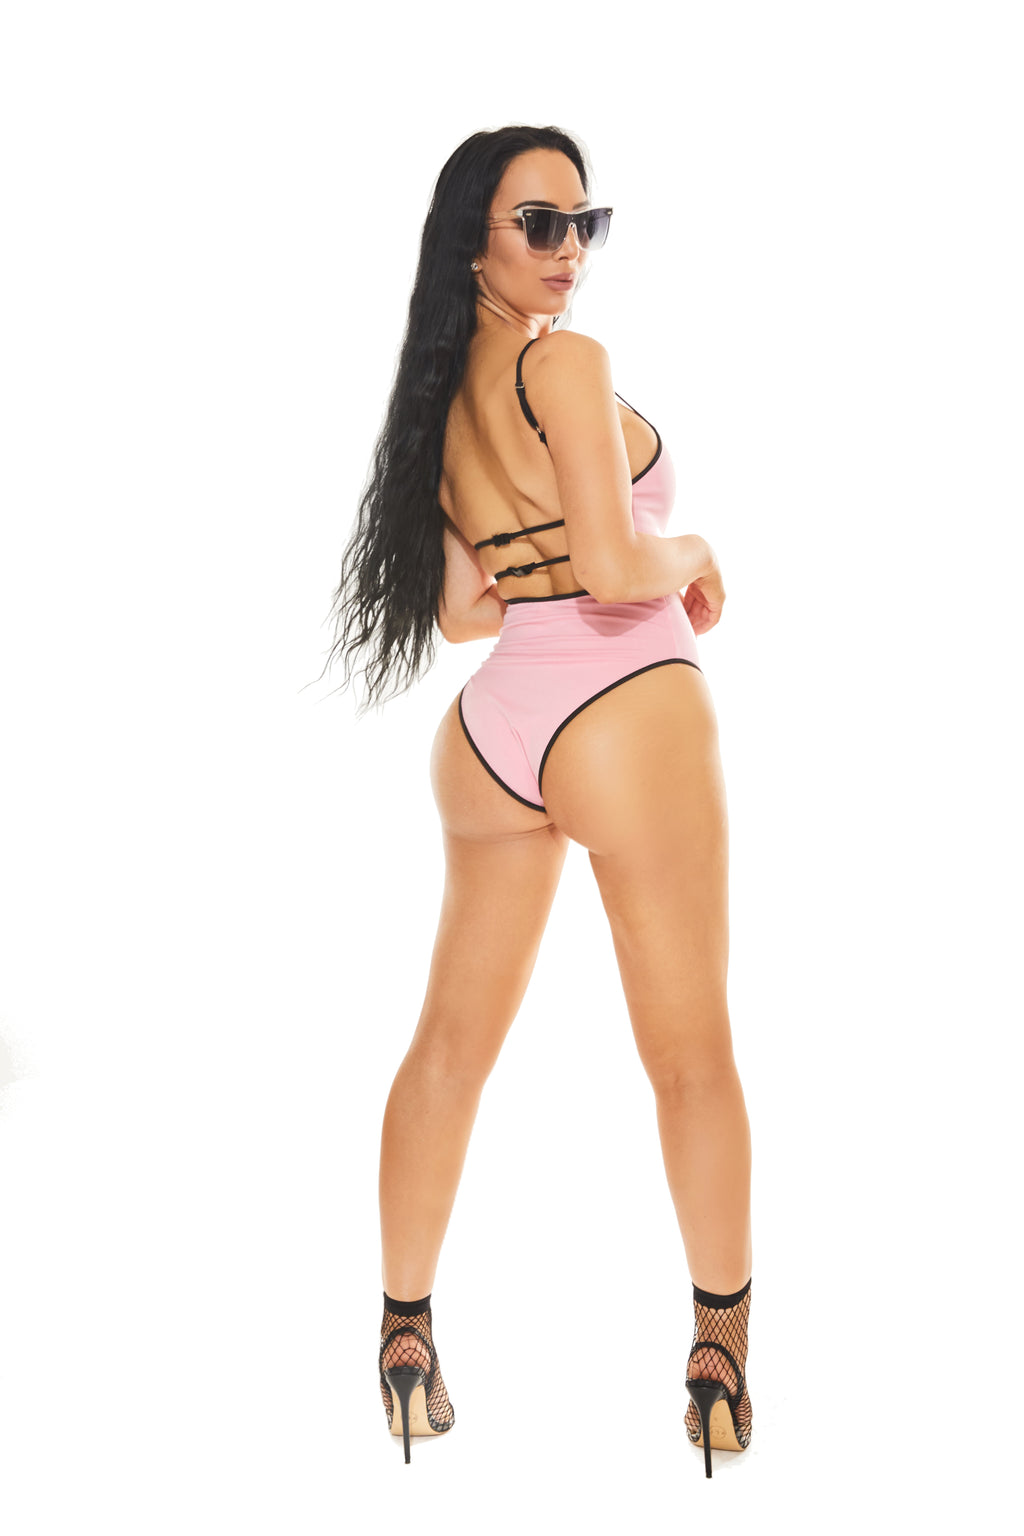 KENDALL BODYSUIT - Pink - www.prettyboutique.com